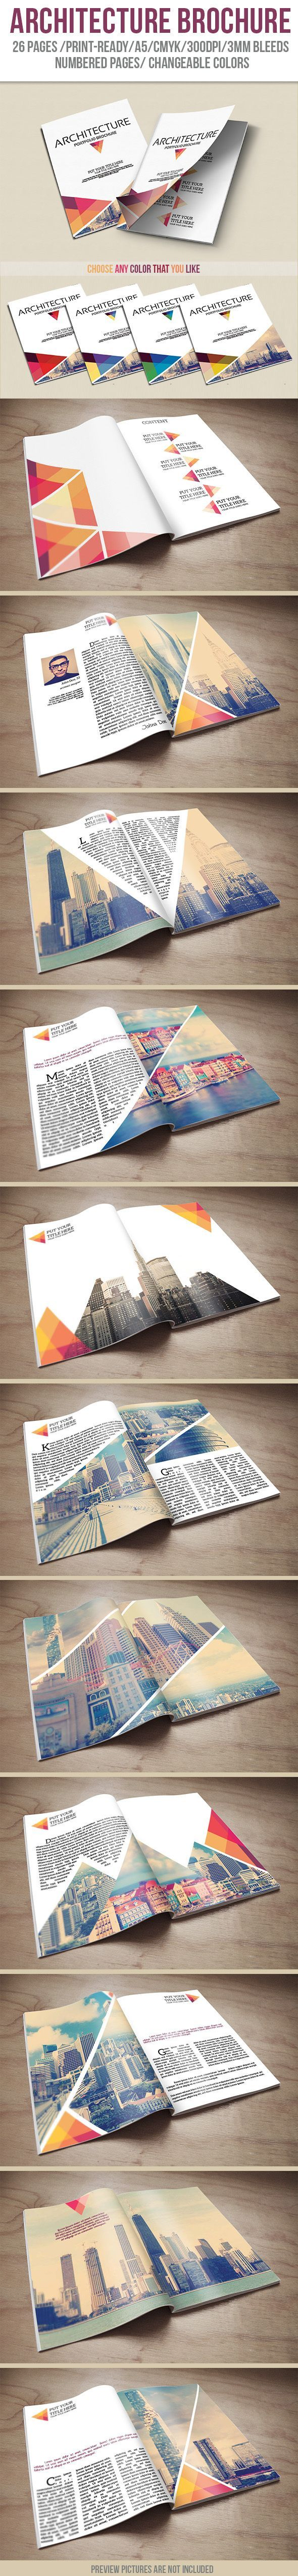 In Design Idml Or LowerThis Is A Architecture And Modern Looking Brochure Style Template You Can Change Your Own Text Pictures